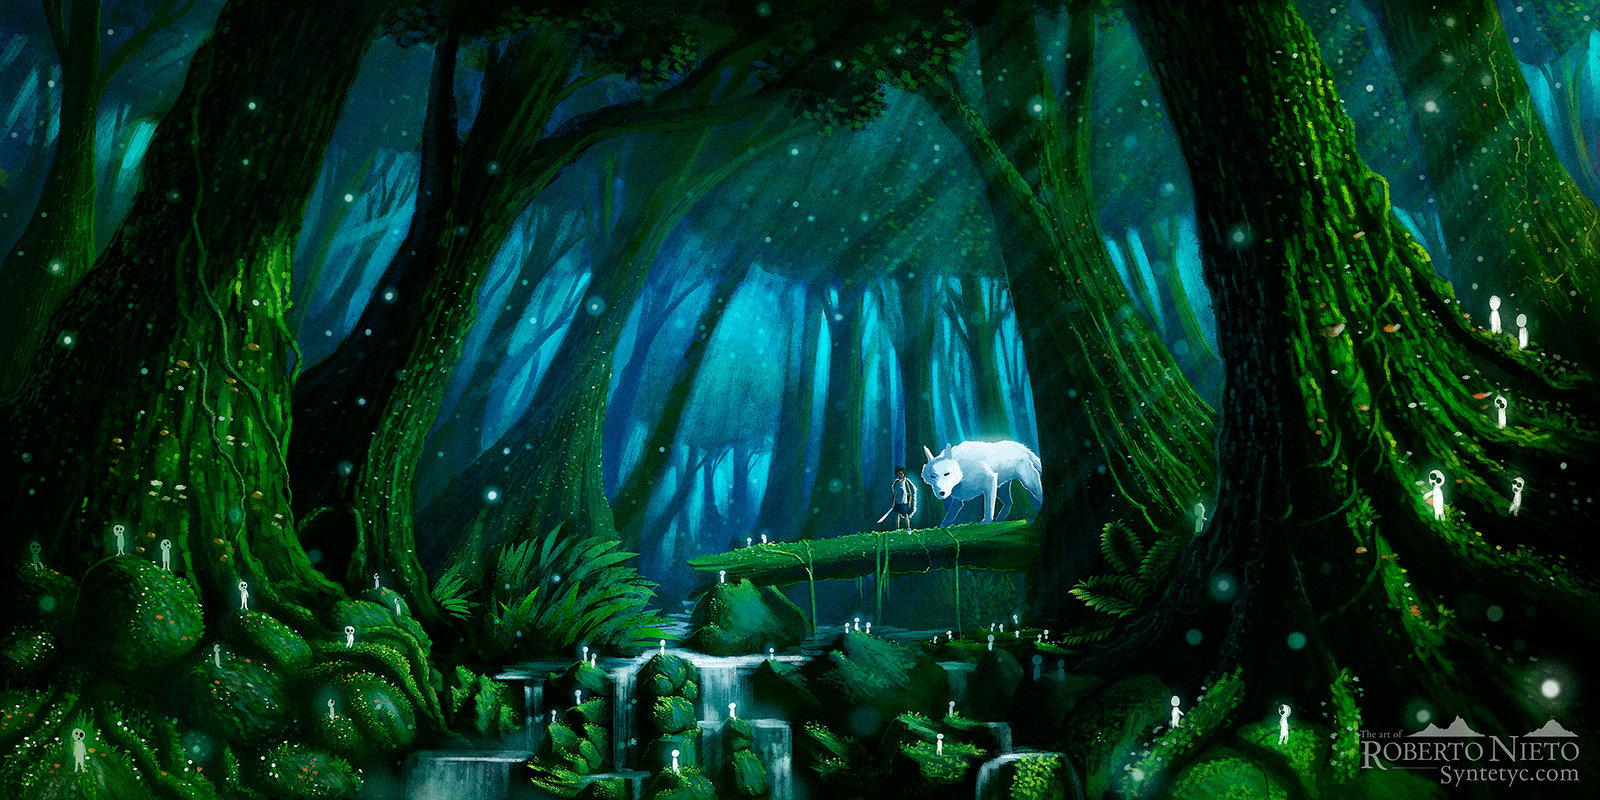 Mononoke Hime Wallpaper Princess Mononoke Wallpaper 4k 1600x800 Download Hd Wallpaper Wallpapertip